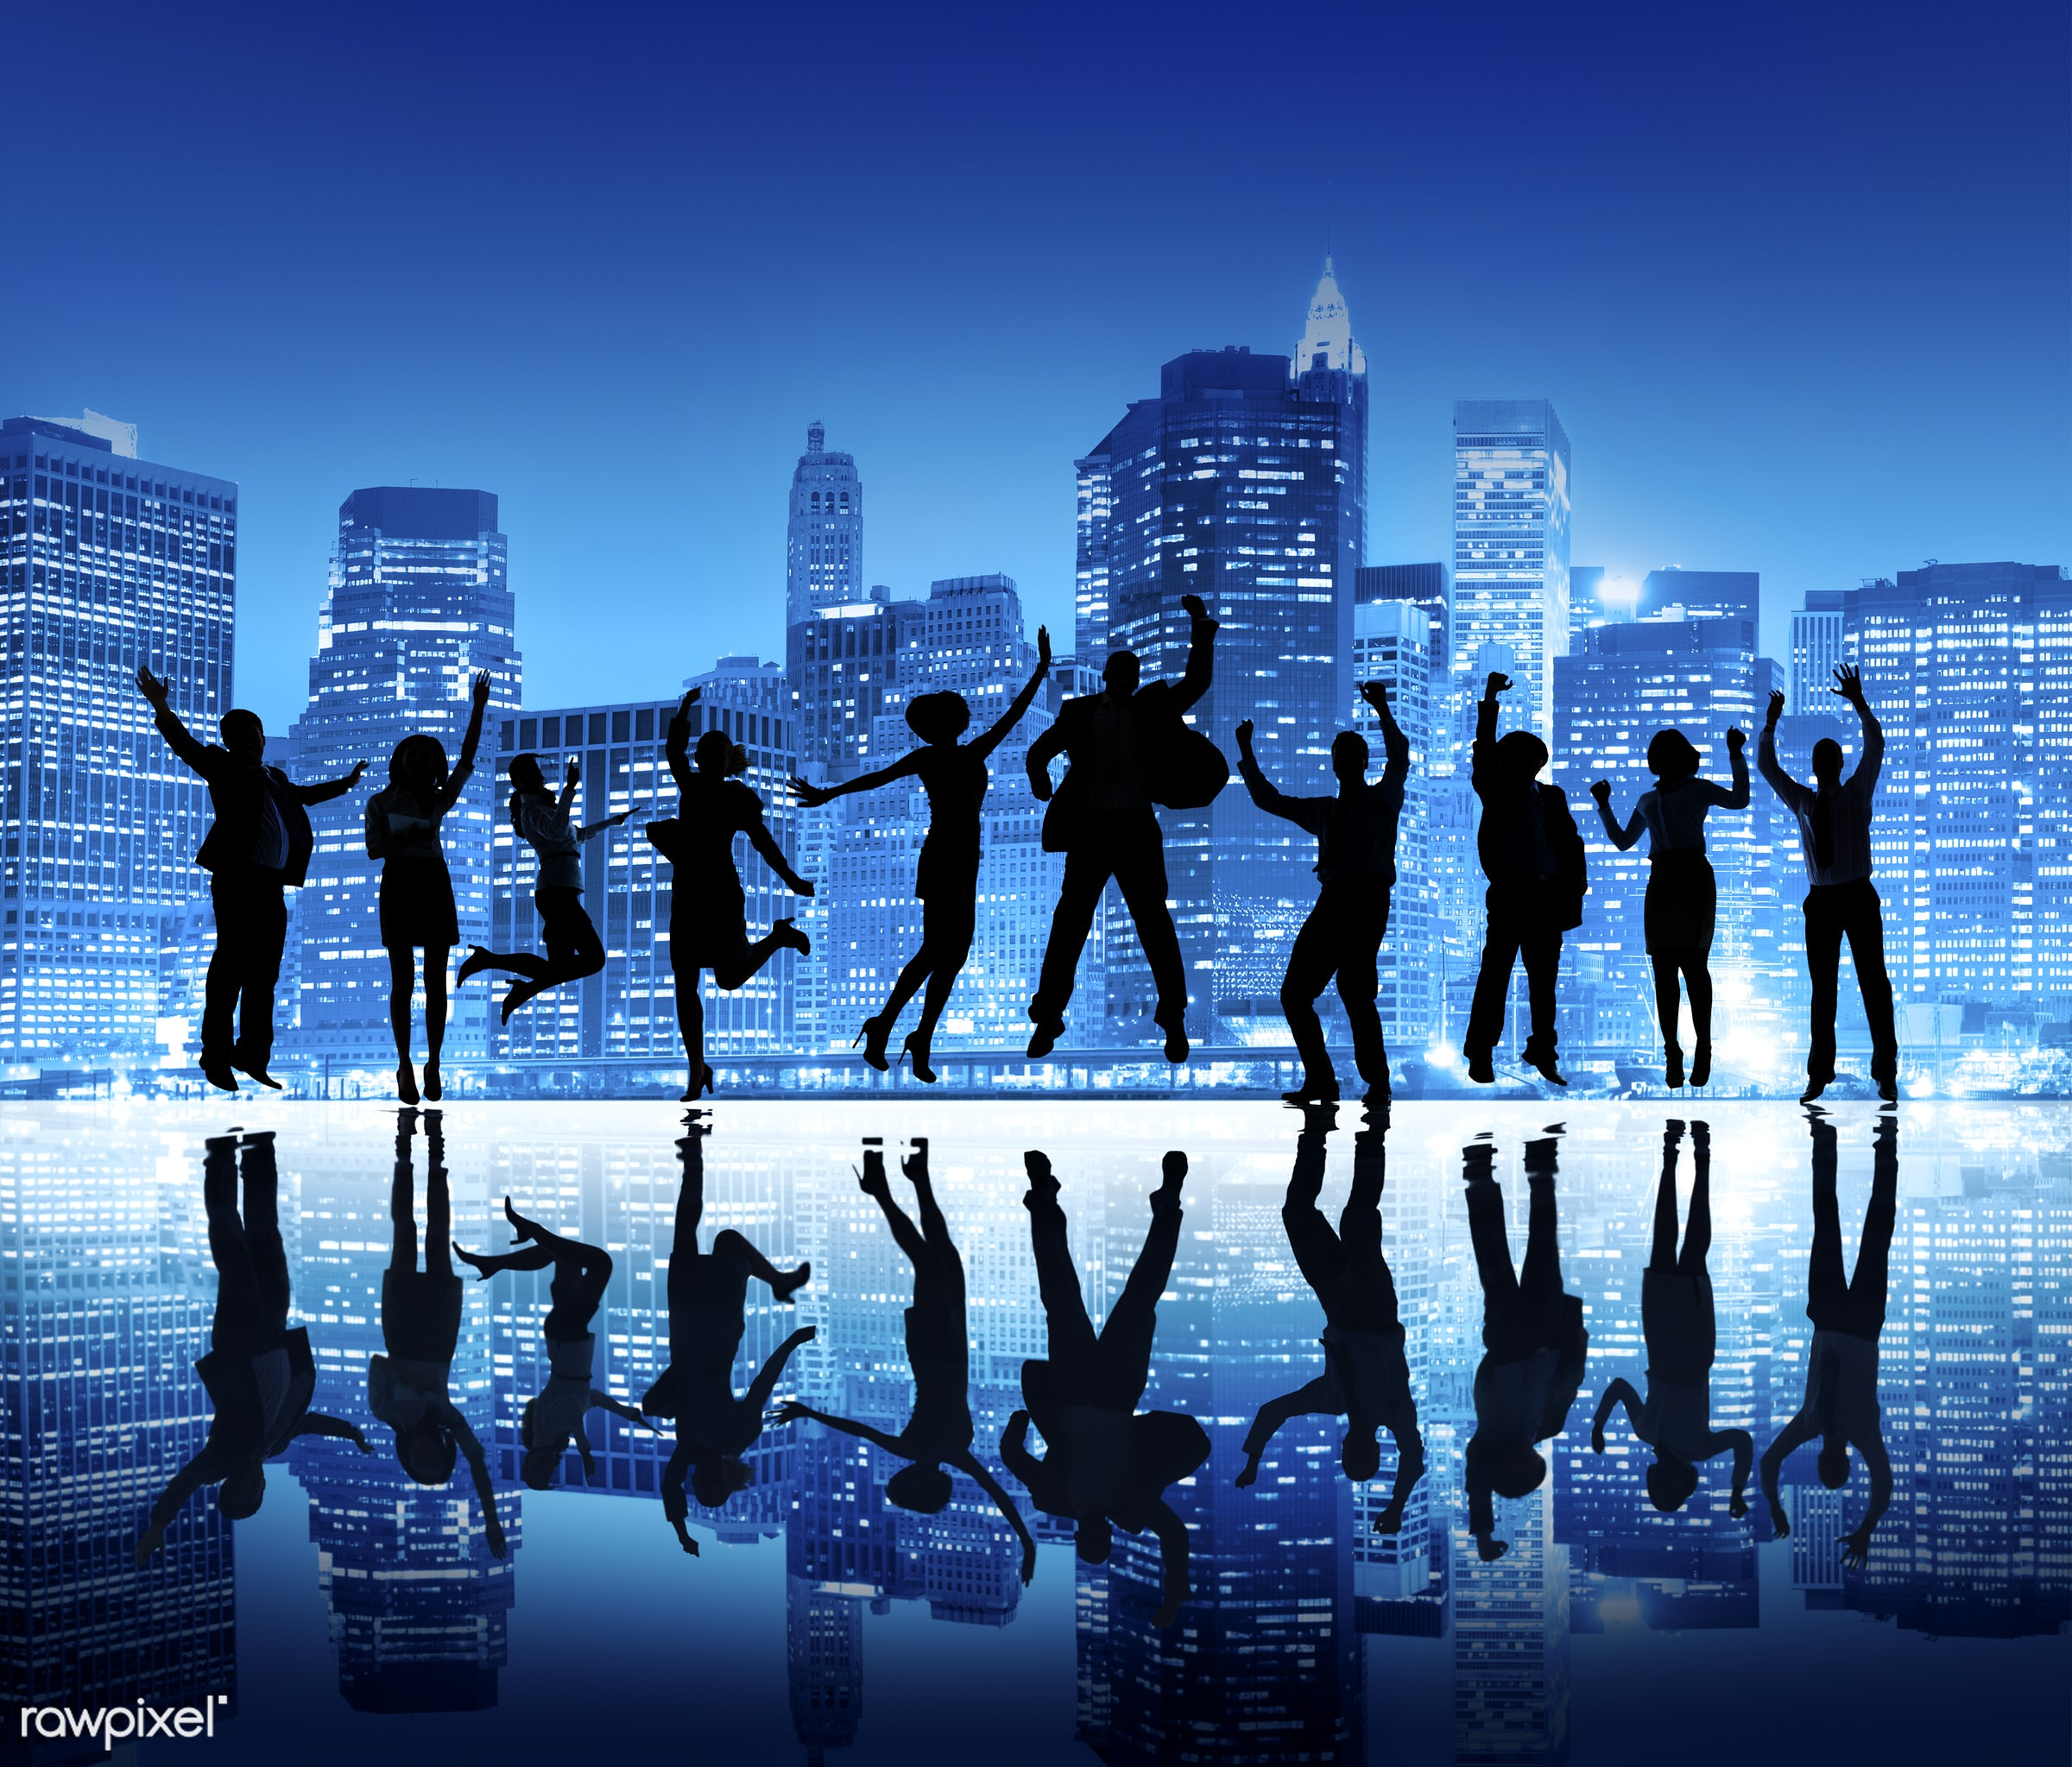 white, achieve, achievement, arms, arms outstretched, arms raised, arrow, business, business people, business person,...